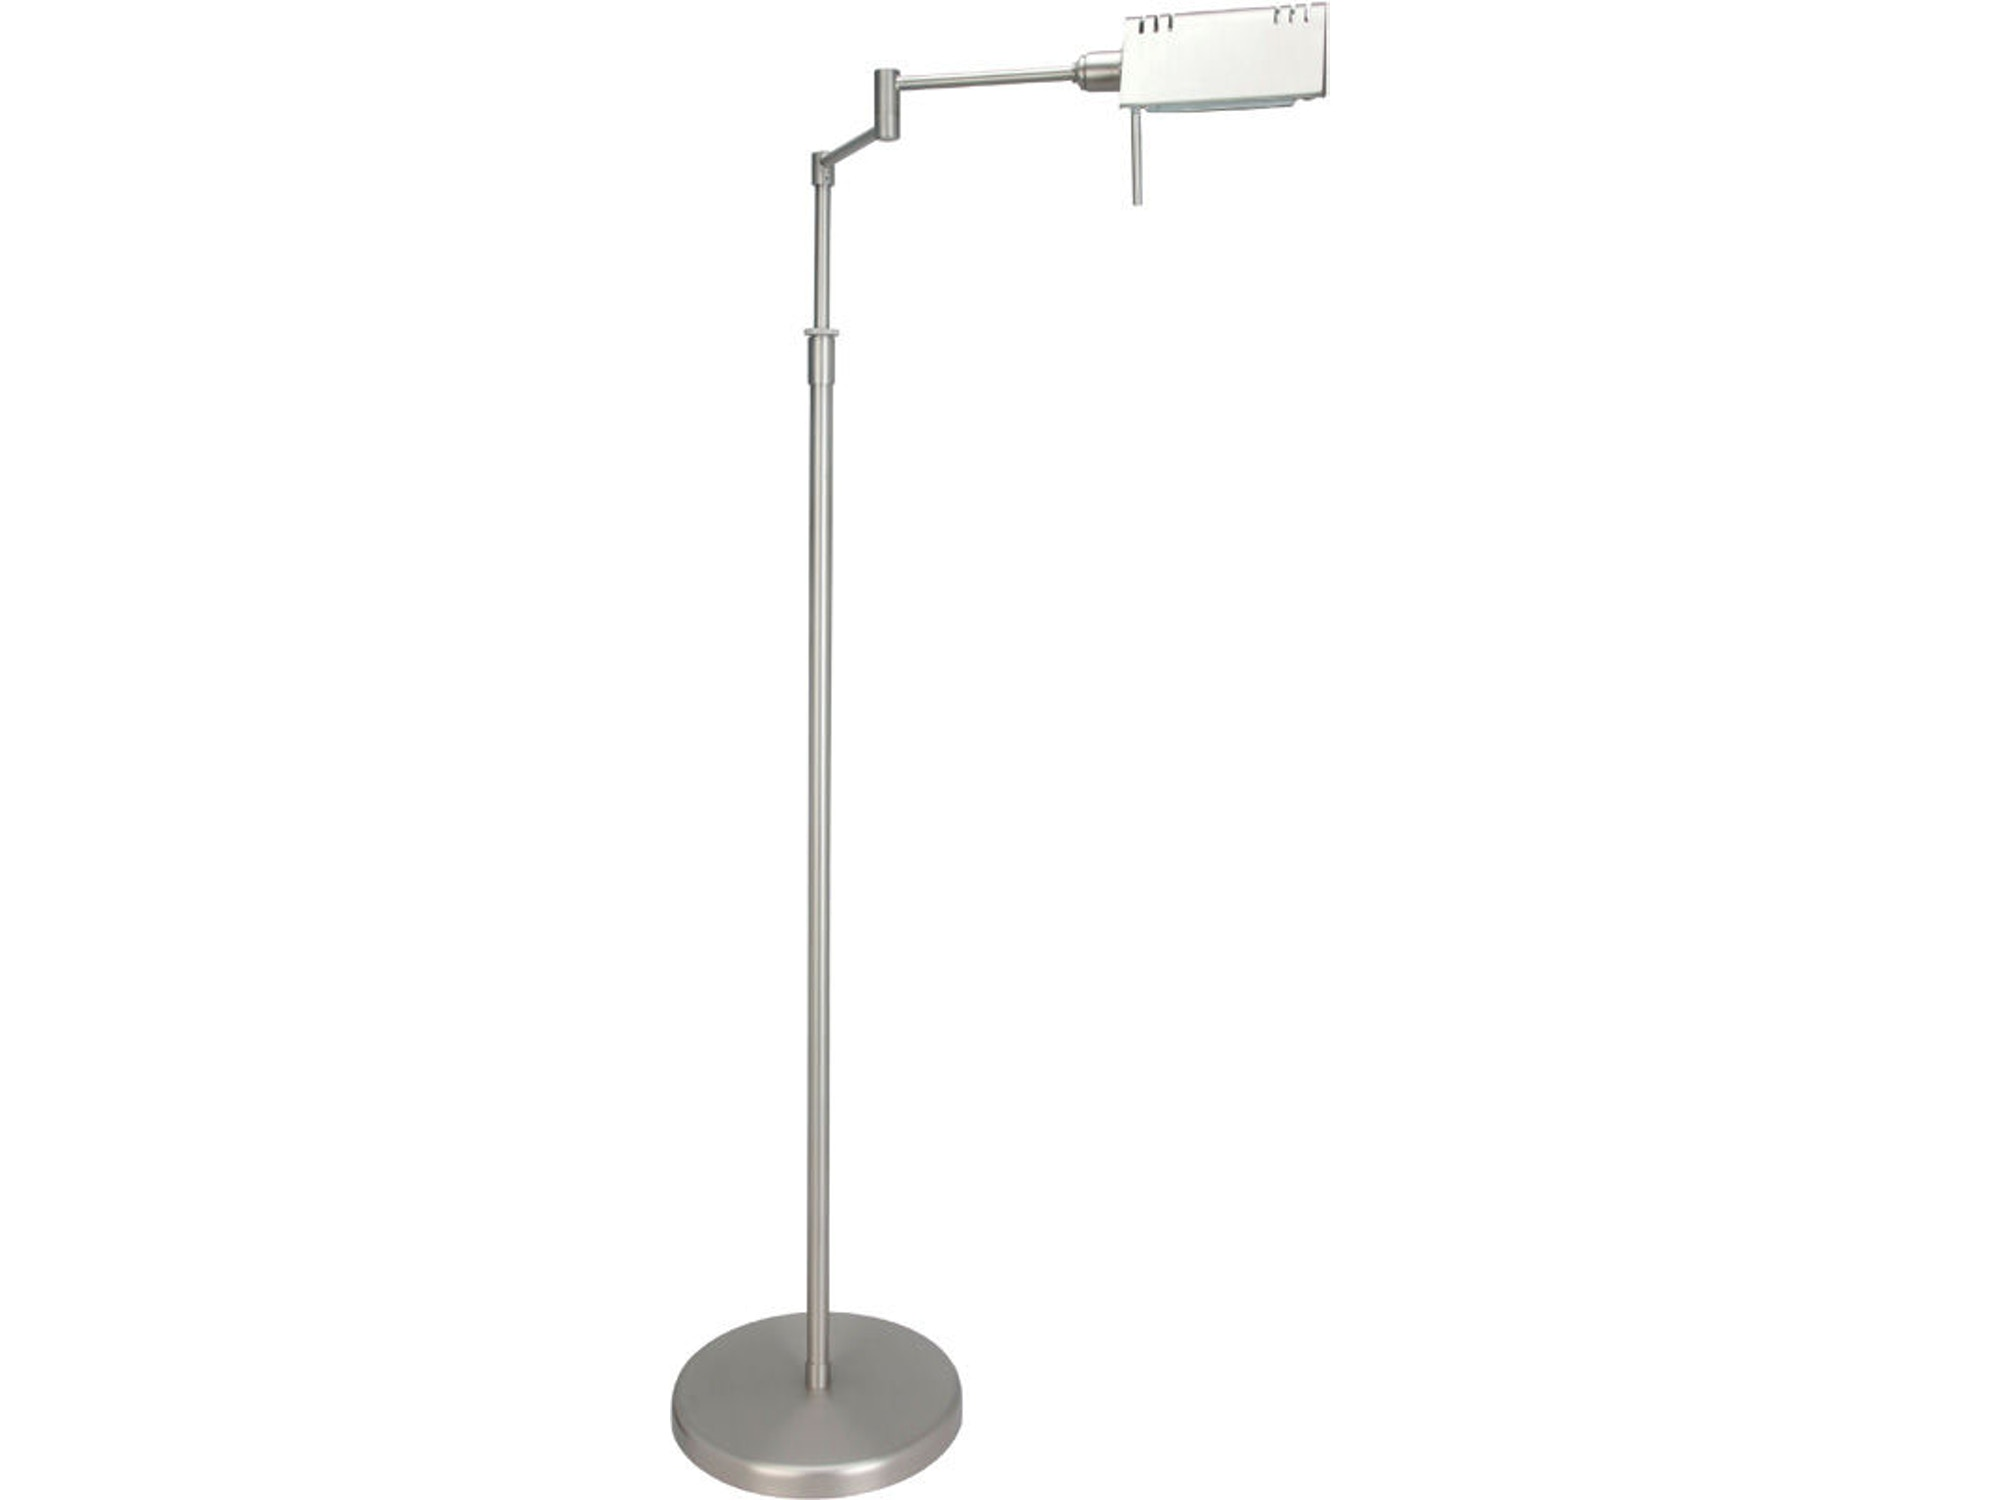 Pharmacy Halogen Floor Lamp 051642